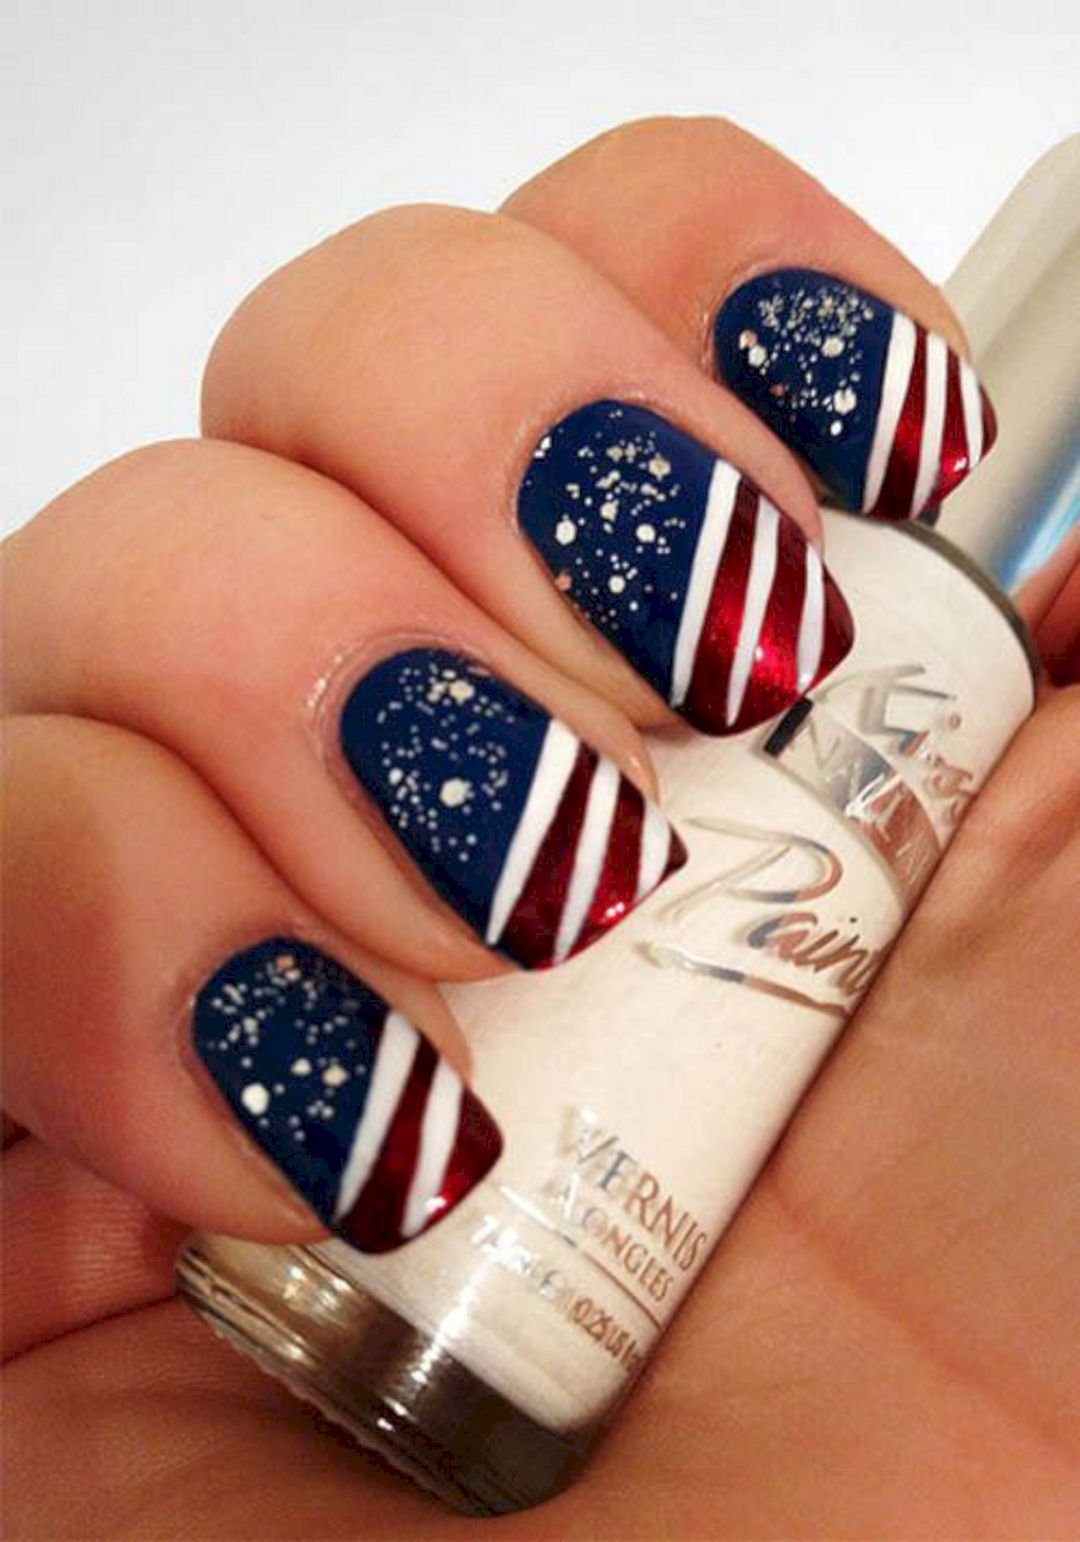 30 Top Fourth Of July Nails Designs Ideas to Steal The Look | 30th ...